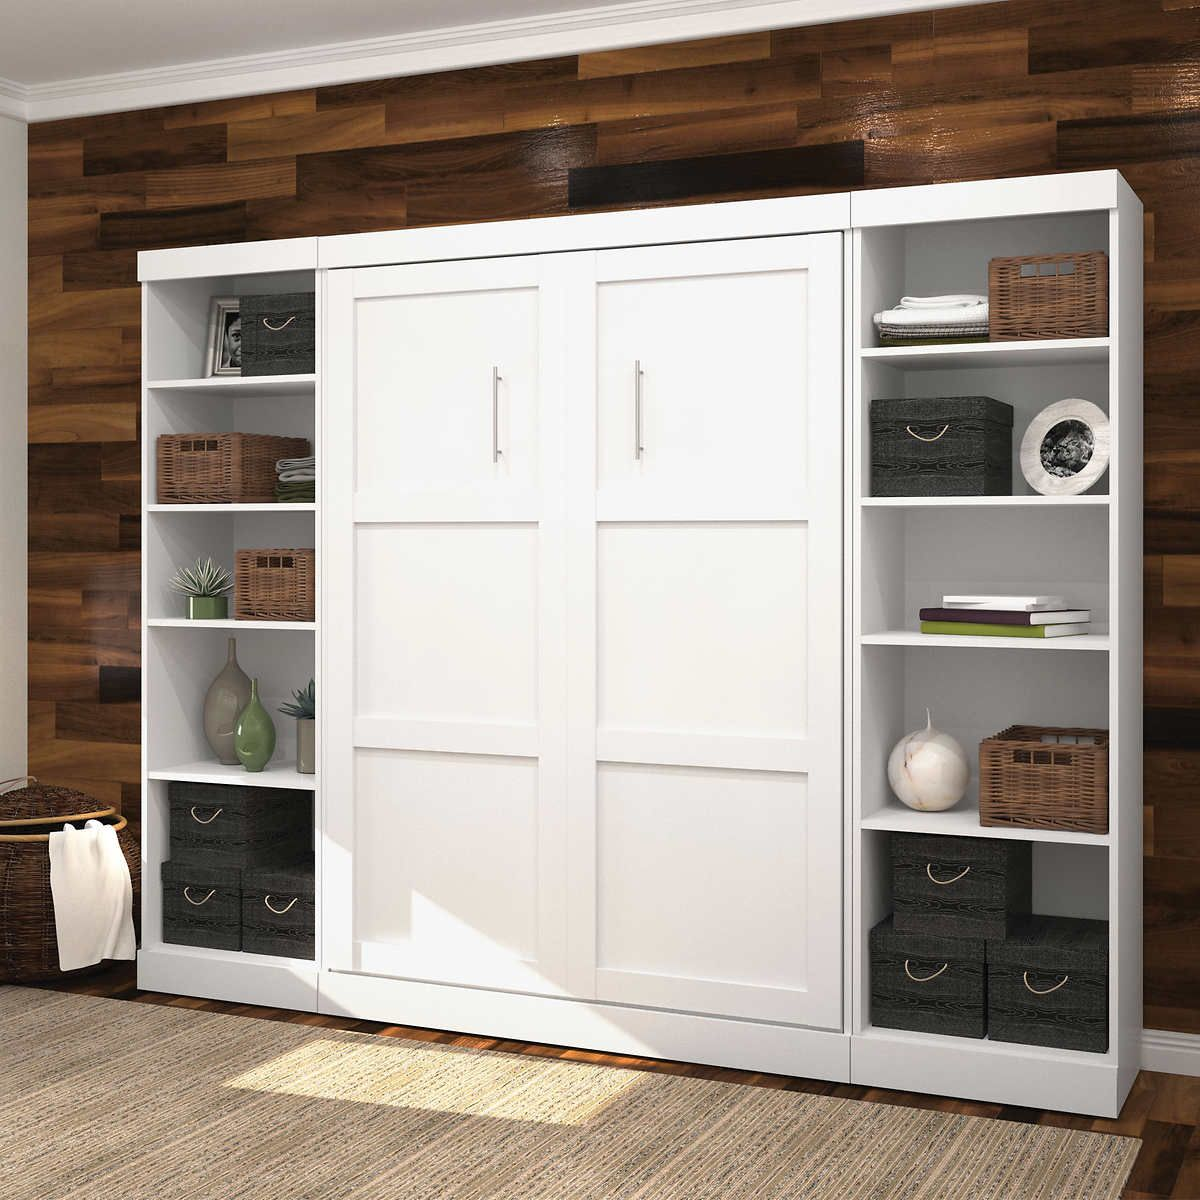 Boutique Full Wall Bed With Two Storage Units In White Murphy